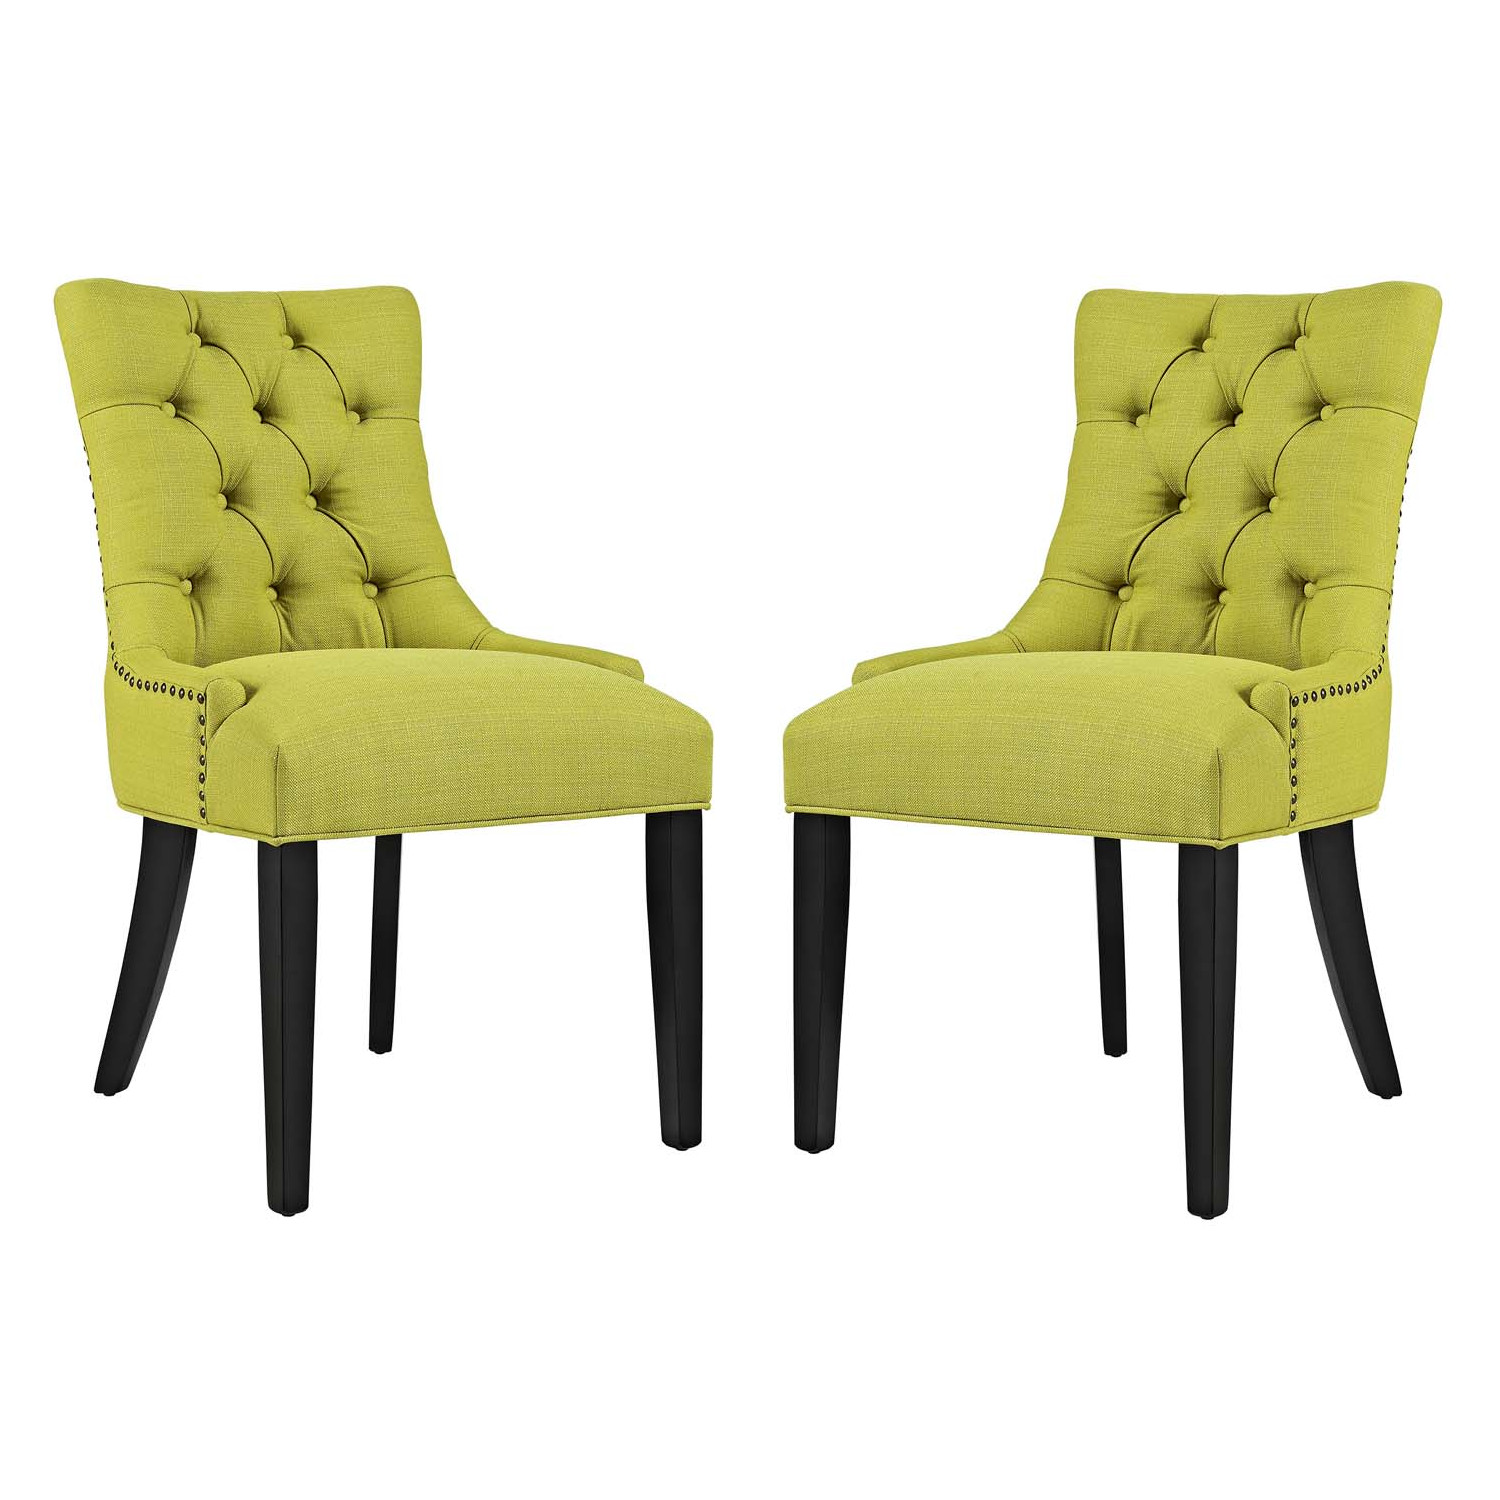 Modway Eei 2863 Blk Regent Dining Chair In Tufted